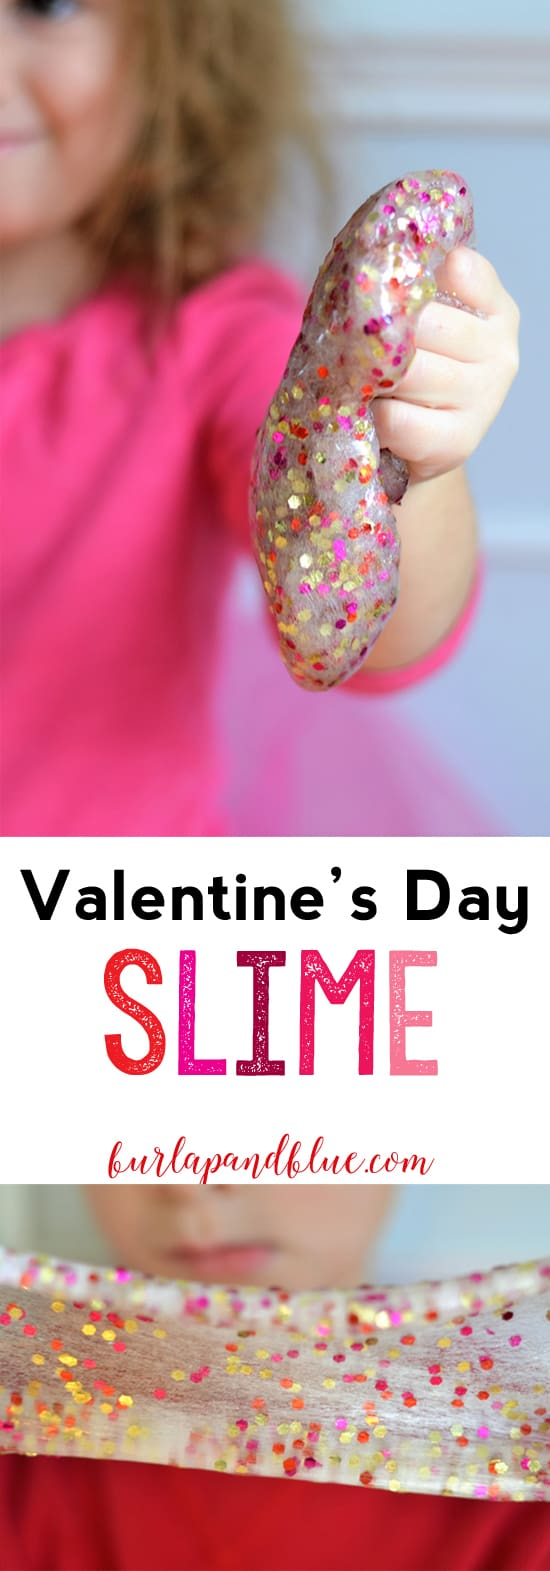 slime for kids 1